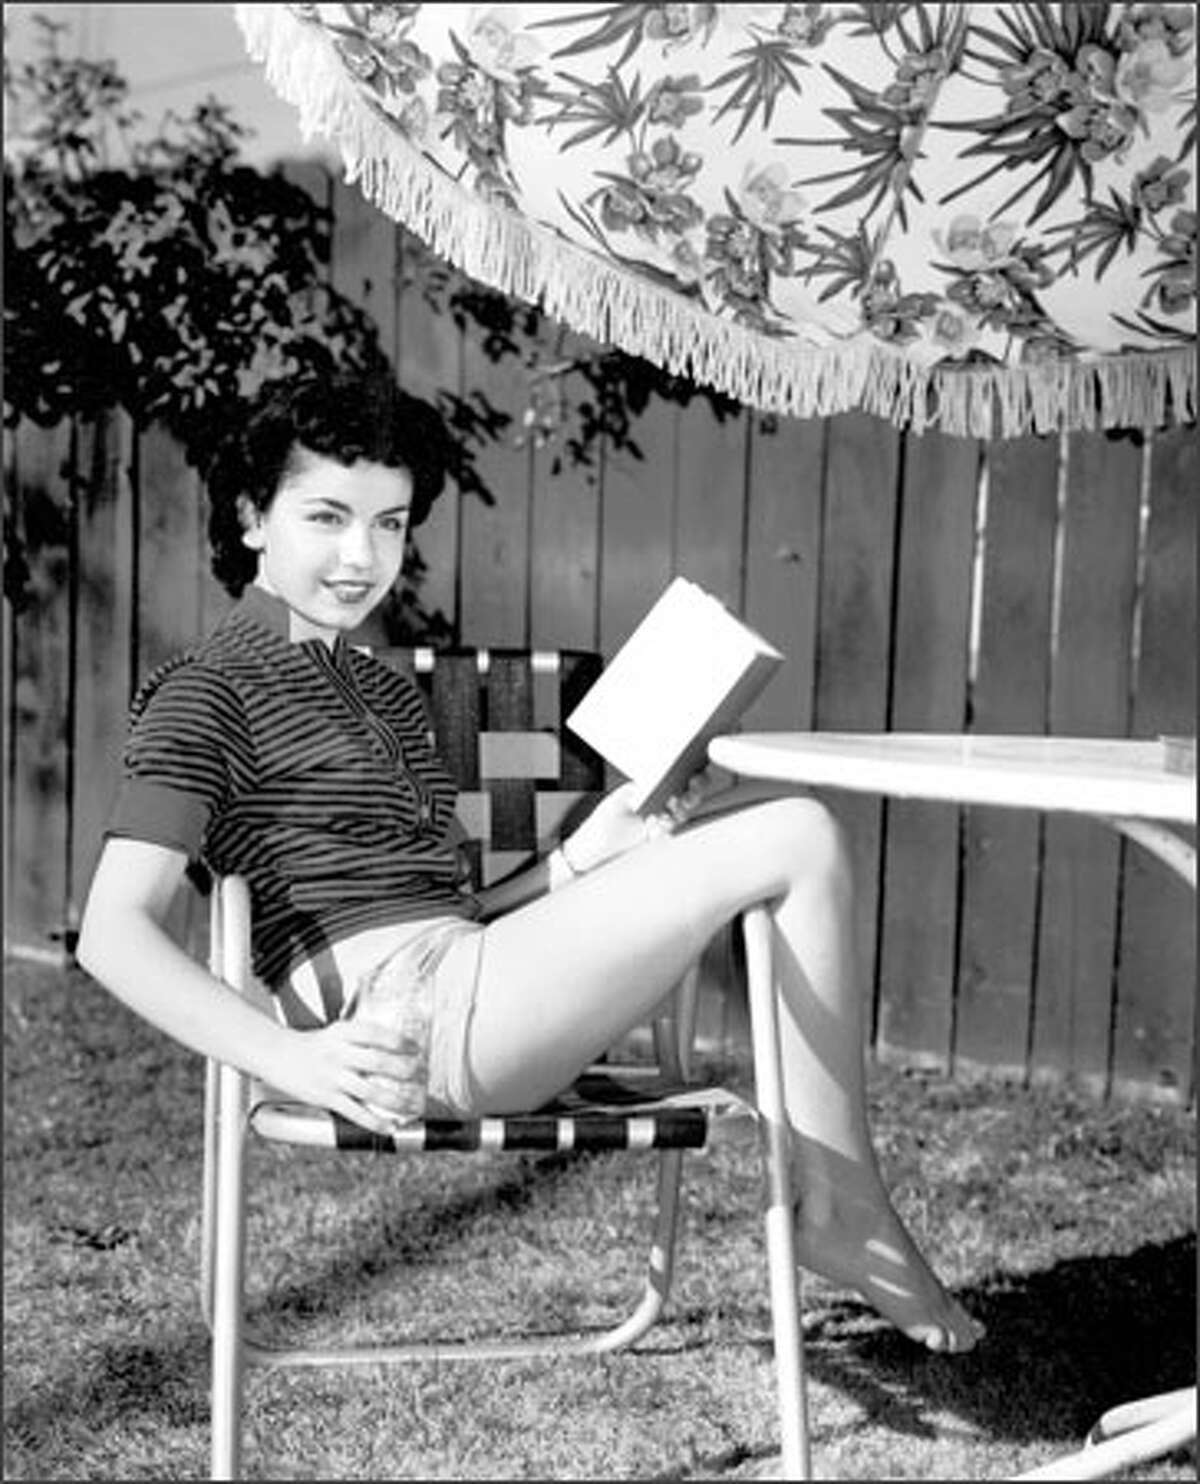 Male baby boomers, long infatuated with the well-endowed Mouseketeer, counted down the seconds to the 18th birthday of Annette Funicello on Oct. 22, 1960.